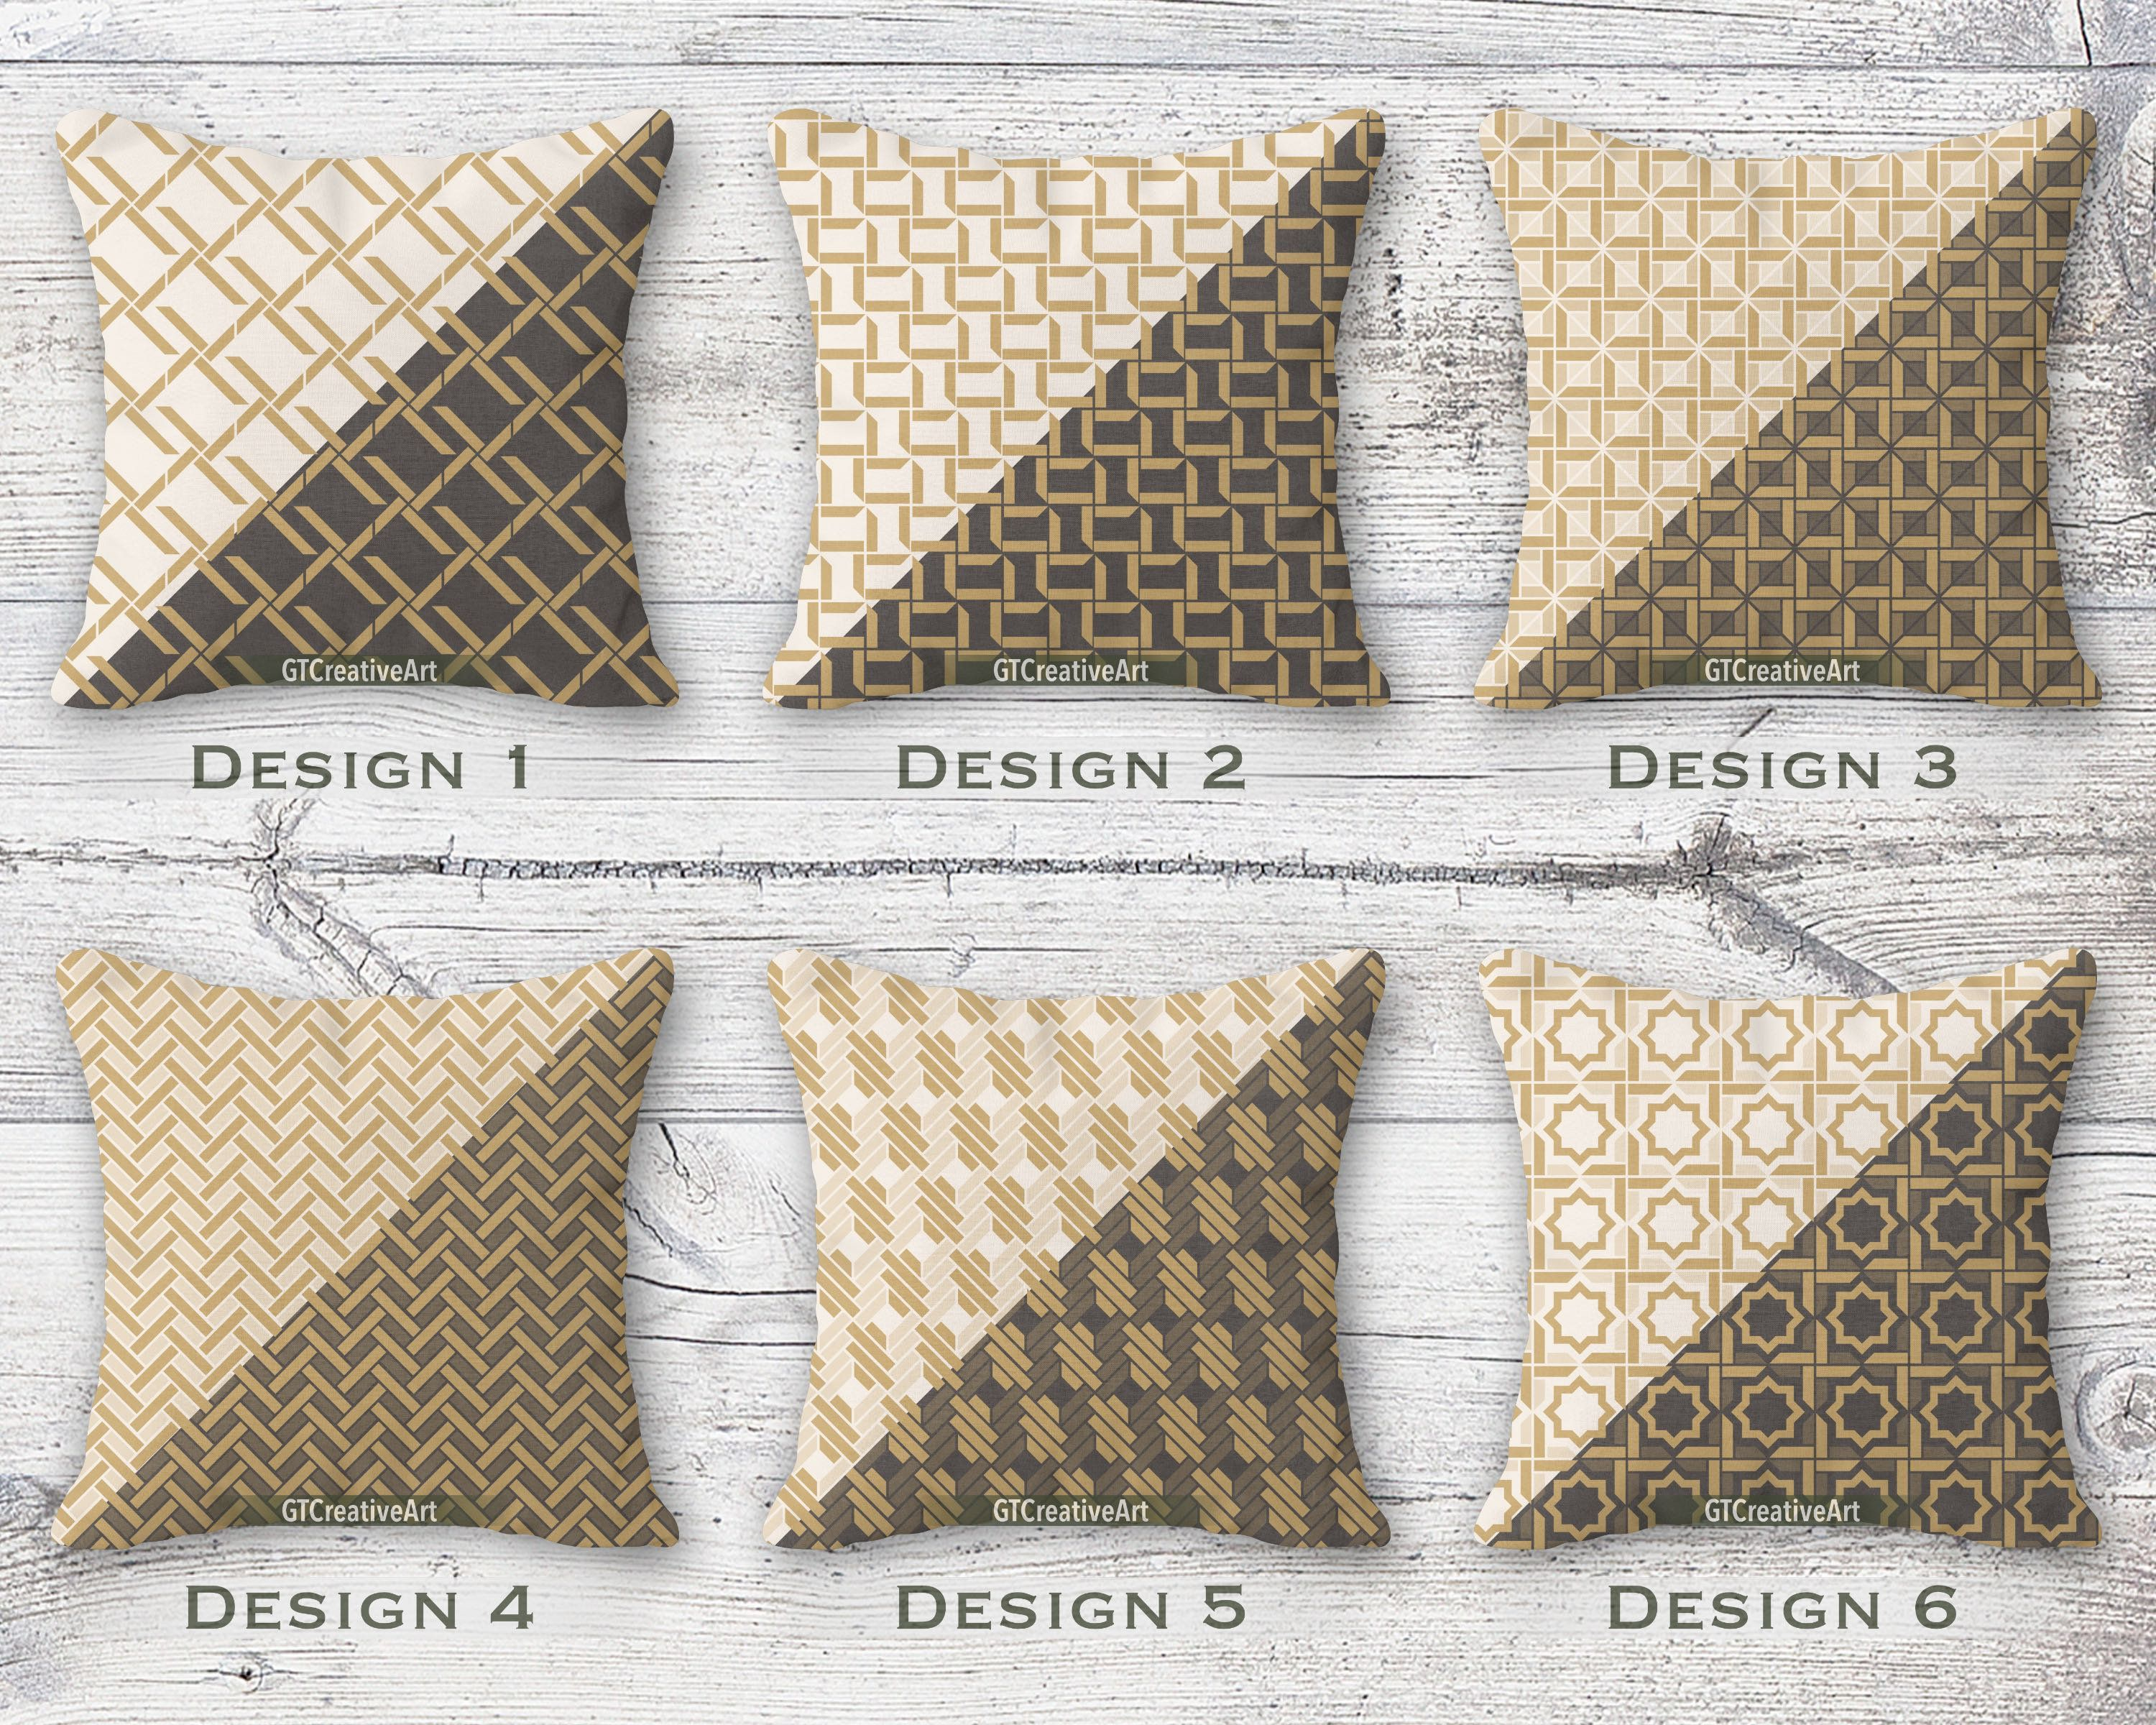 Abstract Geometry Cushion Covers Tribal Geometric Throw Pillow Cover Decor Stylish Decoration Cushions With Images Geometric Throw Pillows Cushion Covers Throw Pillows